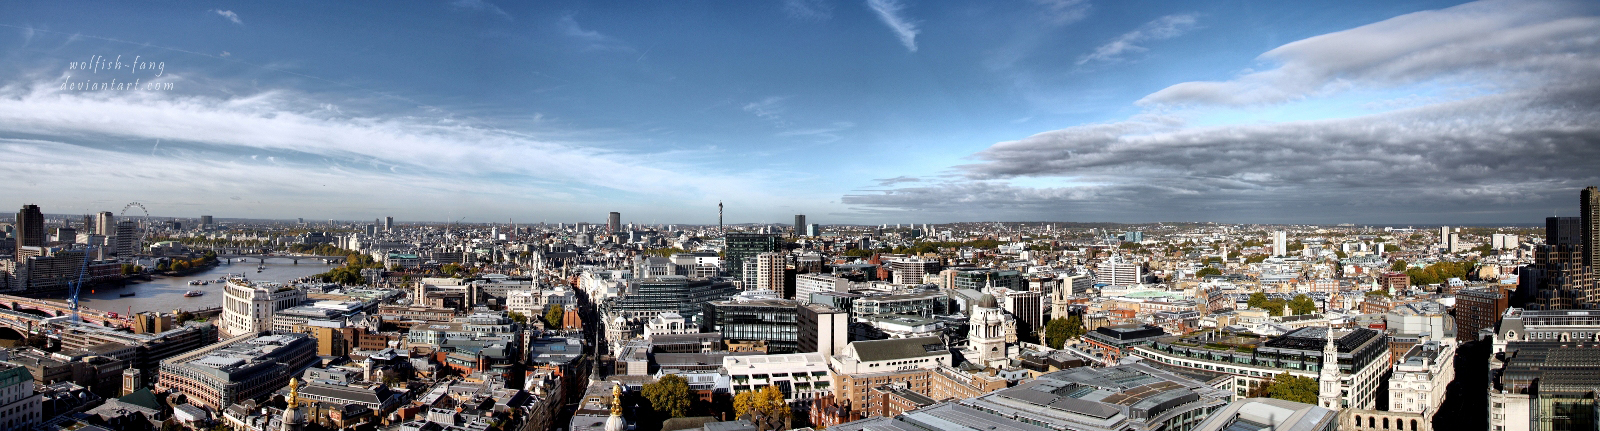 Panorama of London by wolfish-fang